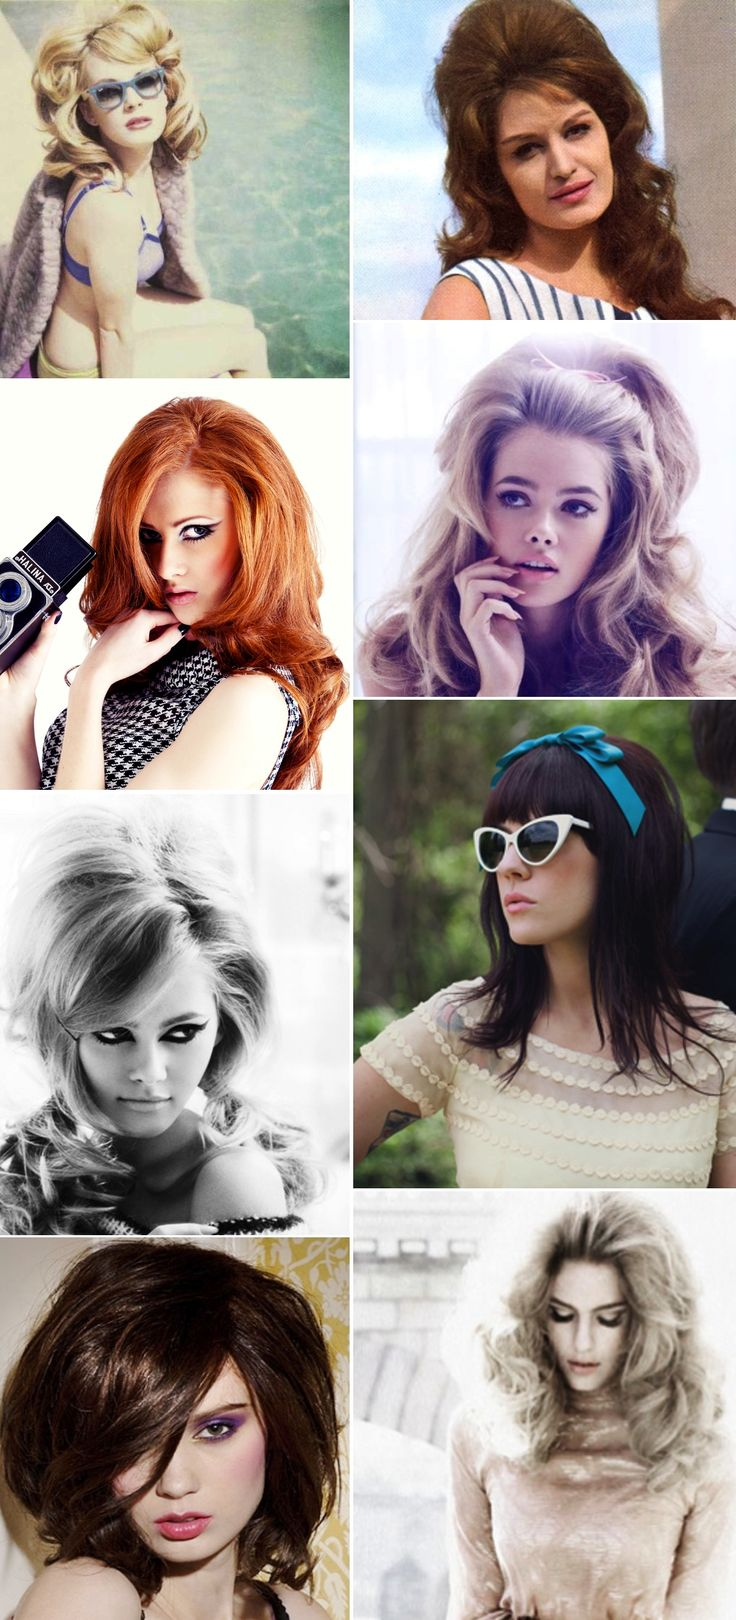 15 best hairstyle ideas - the 60s images on pinterest | hairstyle